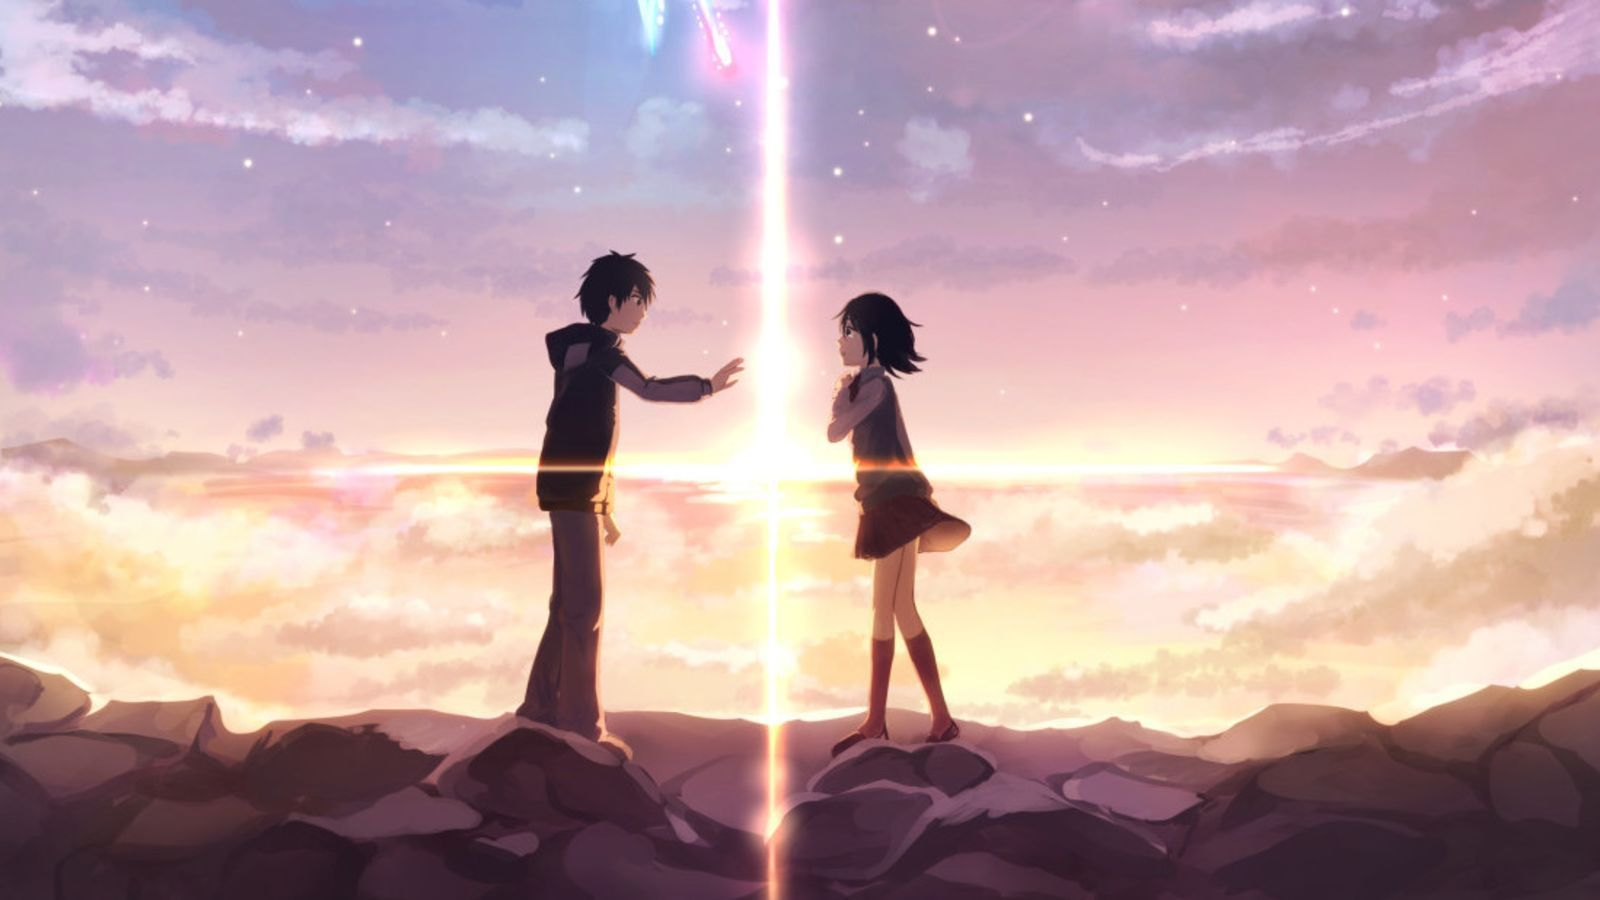 The Your Name Remake Will Be Americanized, According to Its Screenwriter